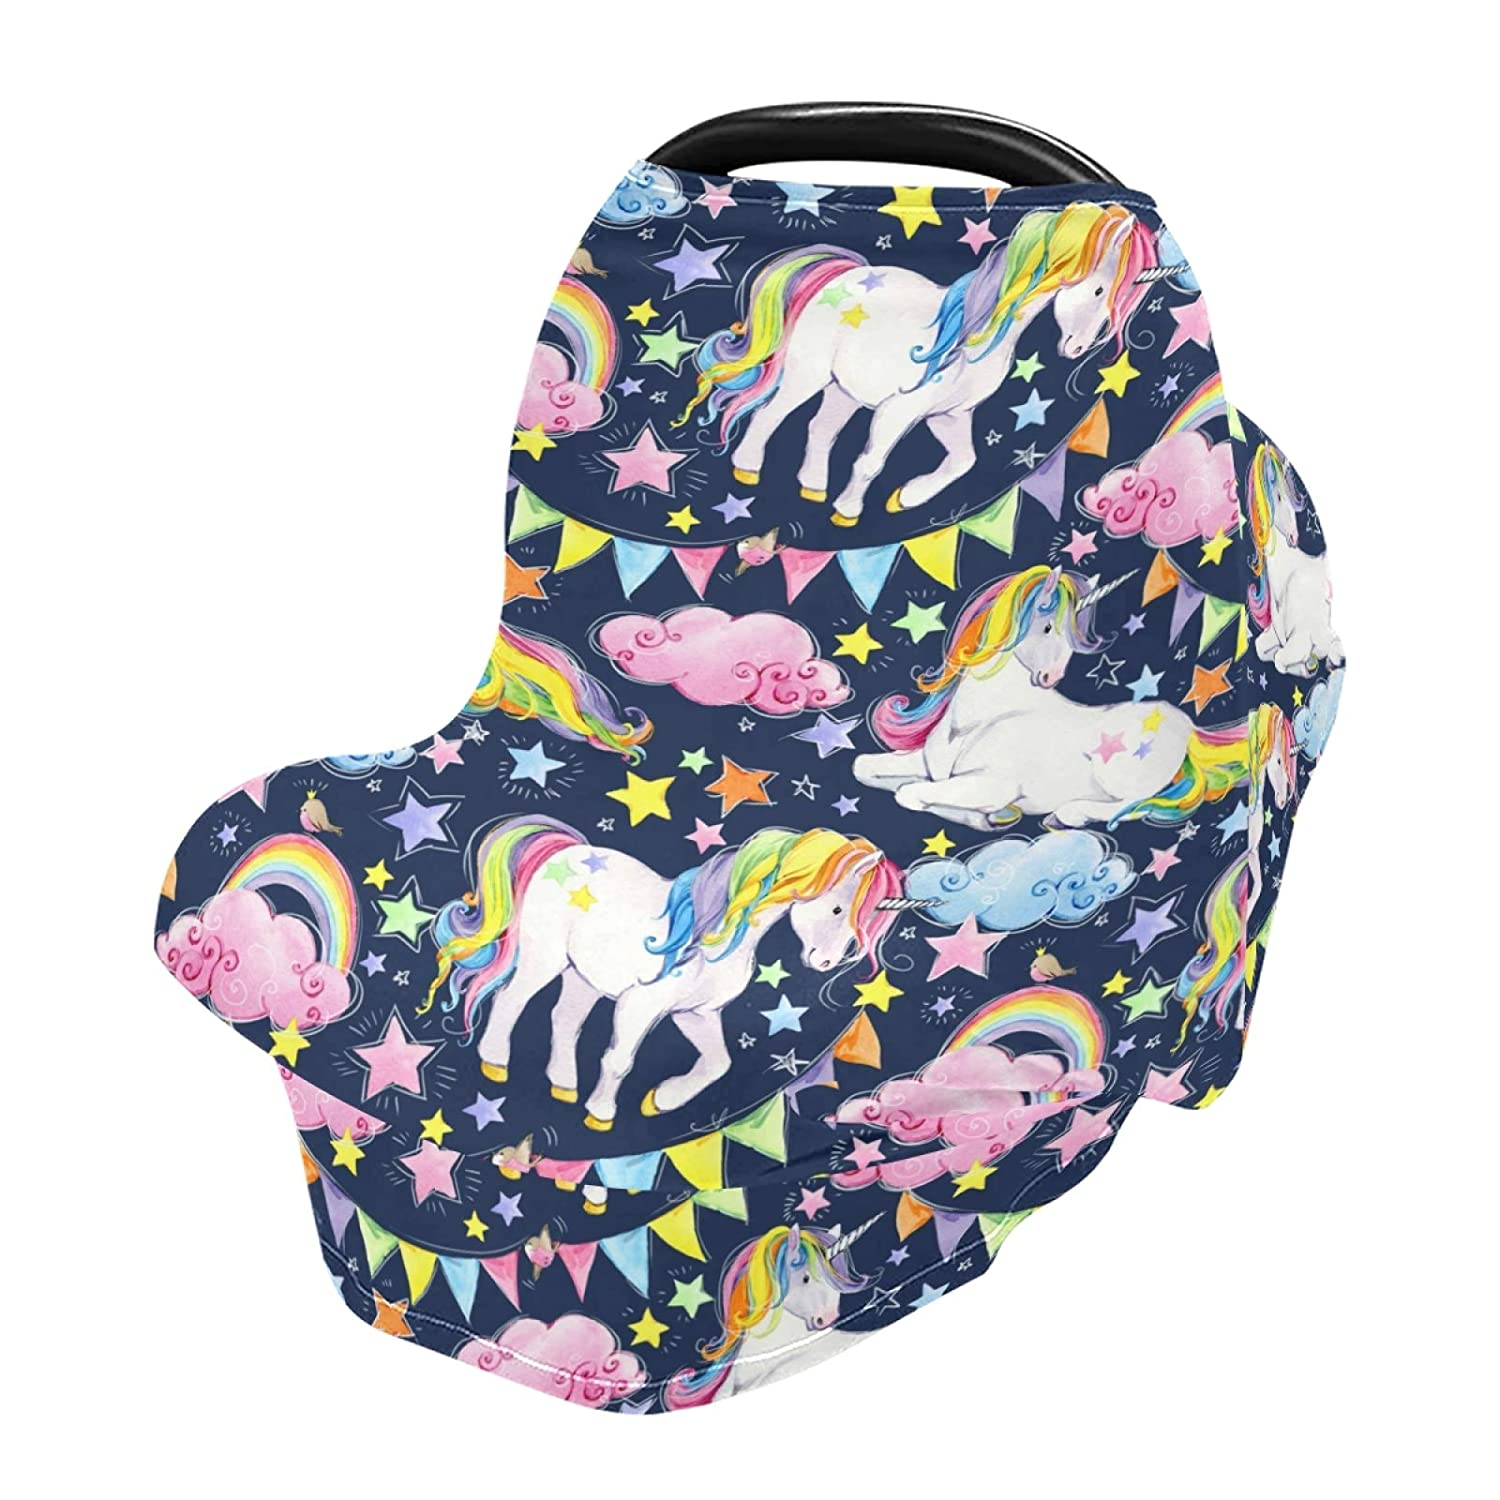 Baby Car Seat Cover Unicorn Star and Cloud Nursing Covers Breastfeeding Scarf Infant Carseat Canopy for Mom Baby Gift